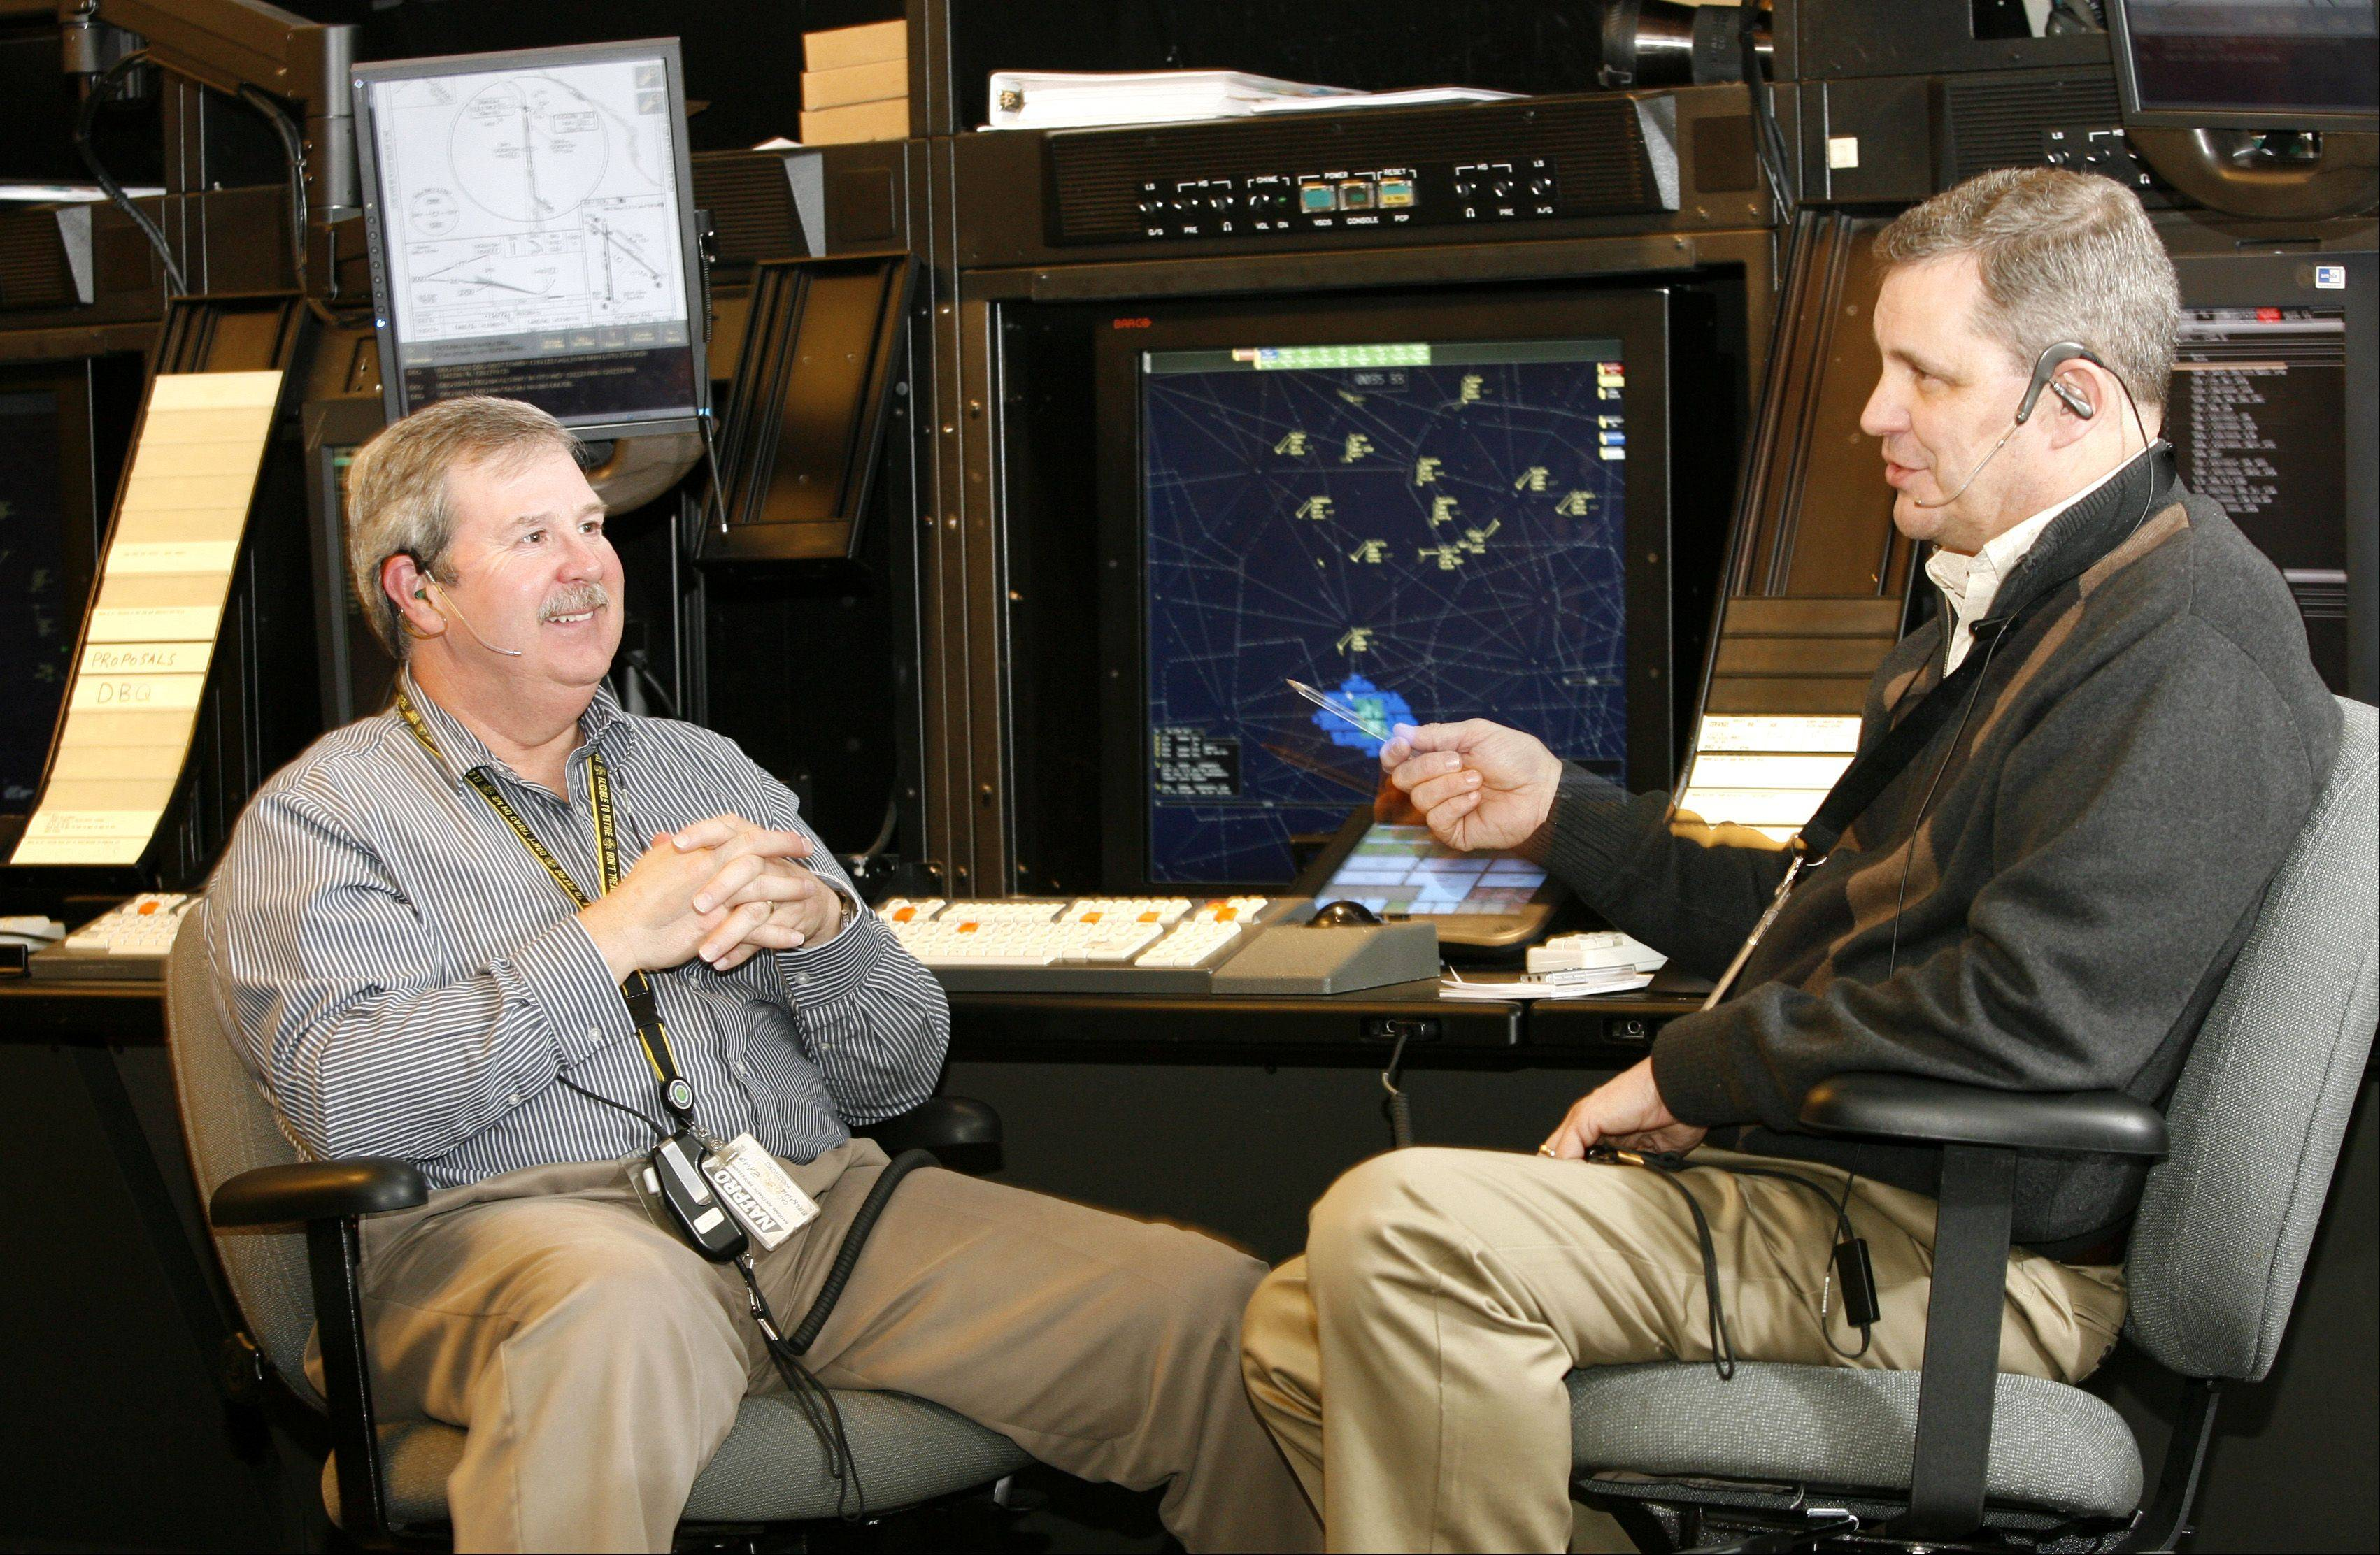 From their dynamic simulator area, traffic controllers Steve McGreevy, left and Guy Lieser, right, discuss how they maneuvered a distressed pilot back safely to the ground from the Air Route Traffic Control Center in Aurora. Their efforts earned them the prestigious Archie League Medal of Safety Award.